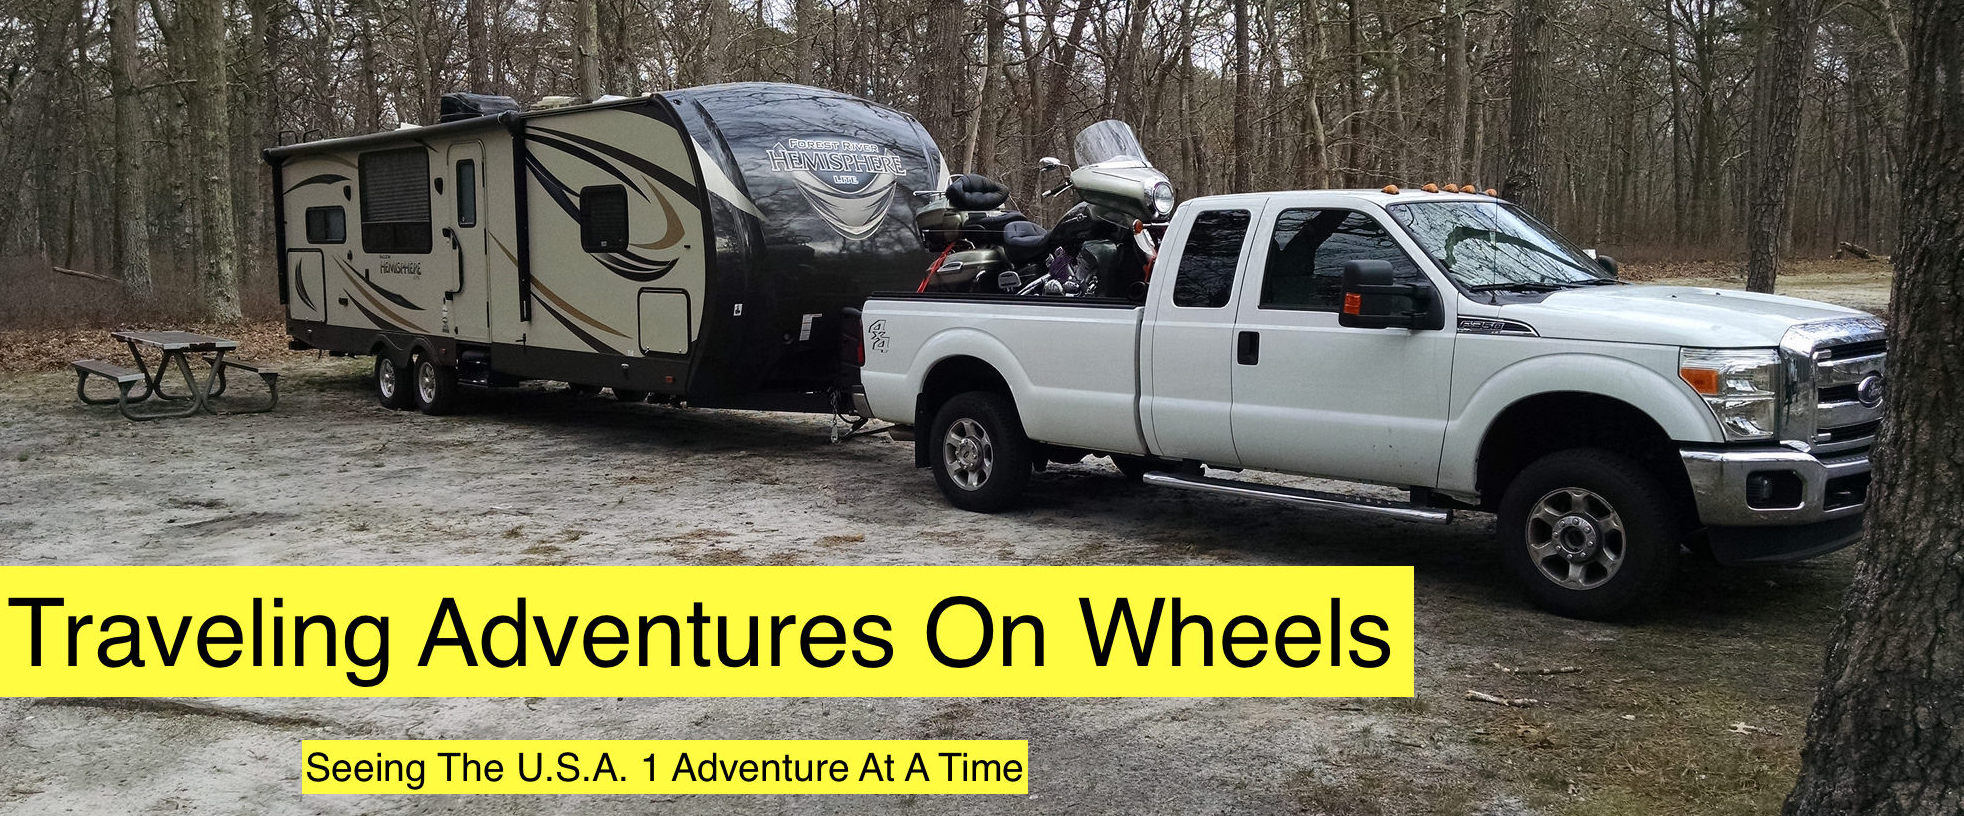 Traveling Adventures on Wheels LLC